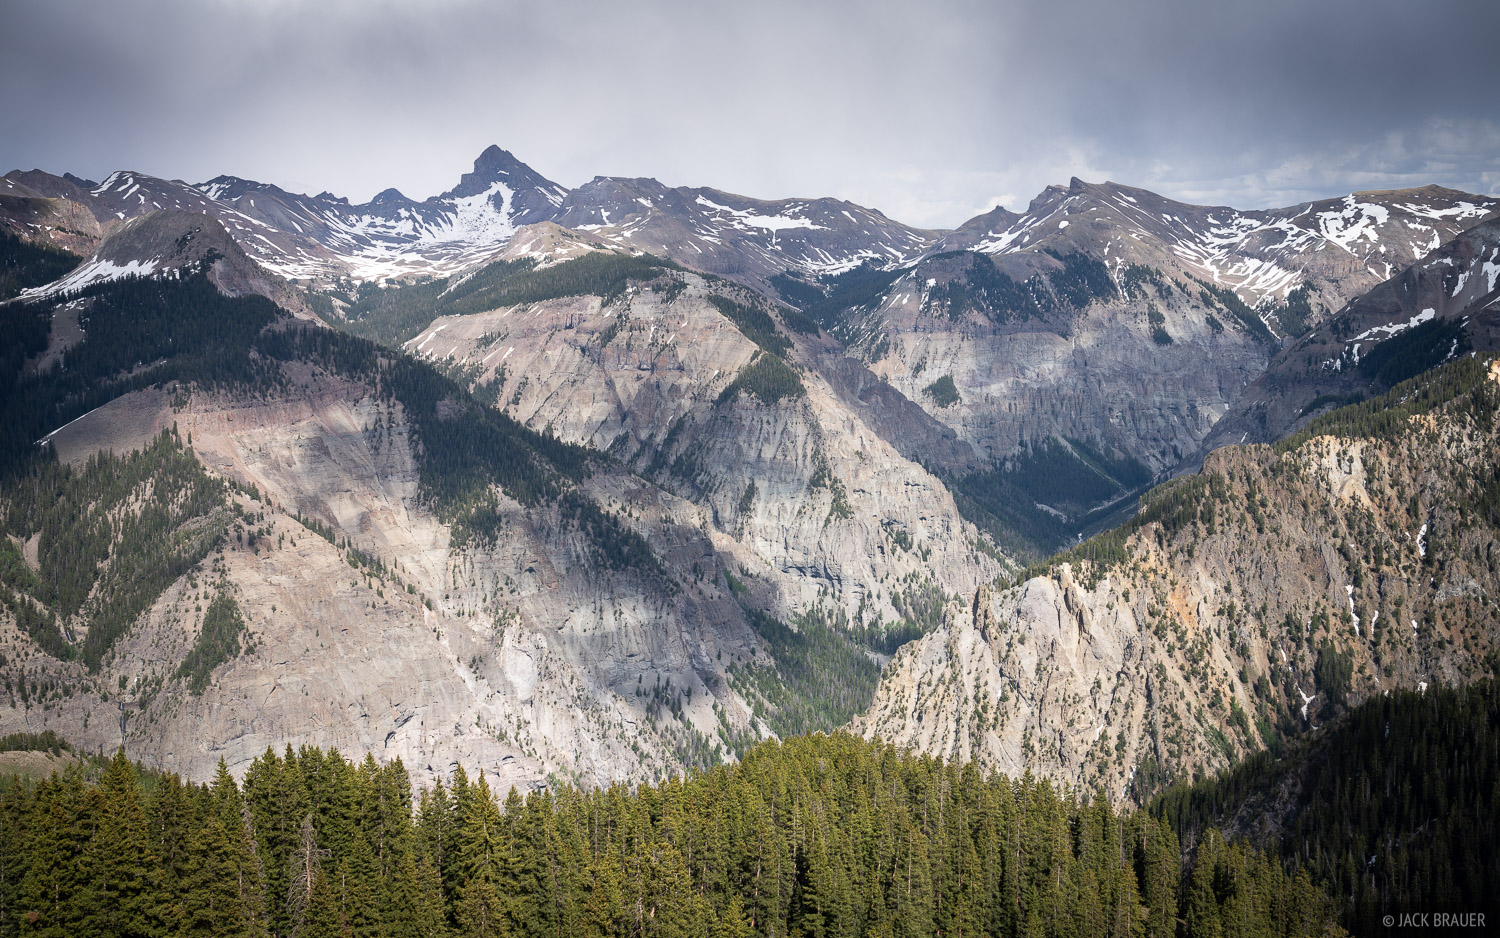 Colorado, Cow Creek, San Juan Mountains, Uncompahgre Wilderness, Wetterhorn Peak, photo